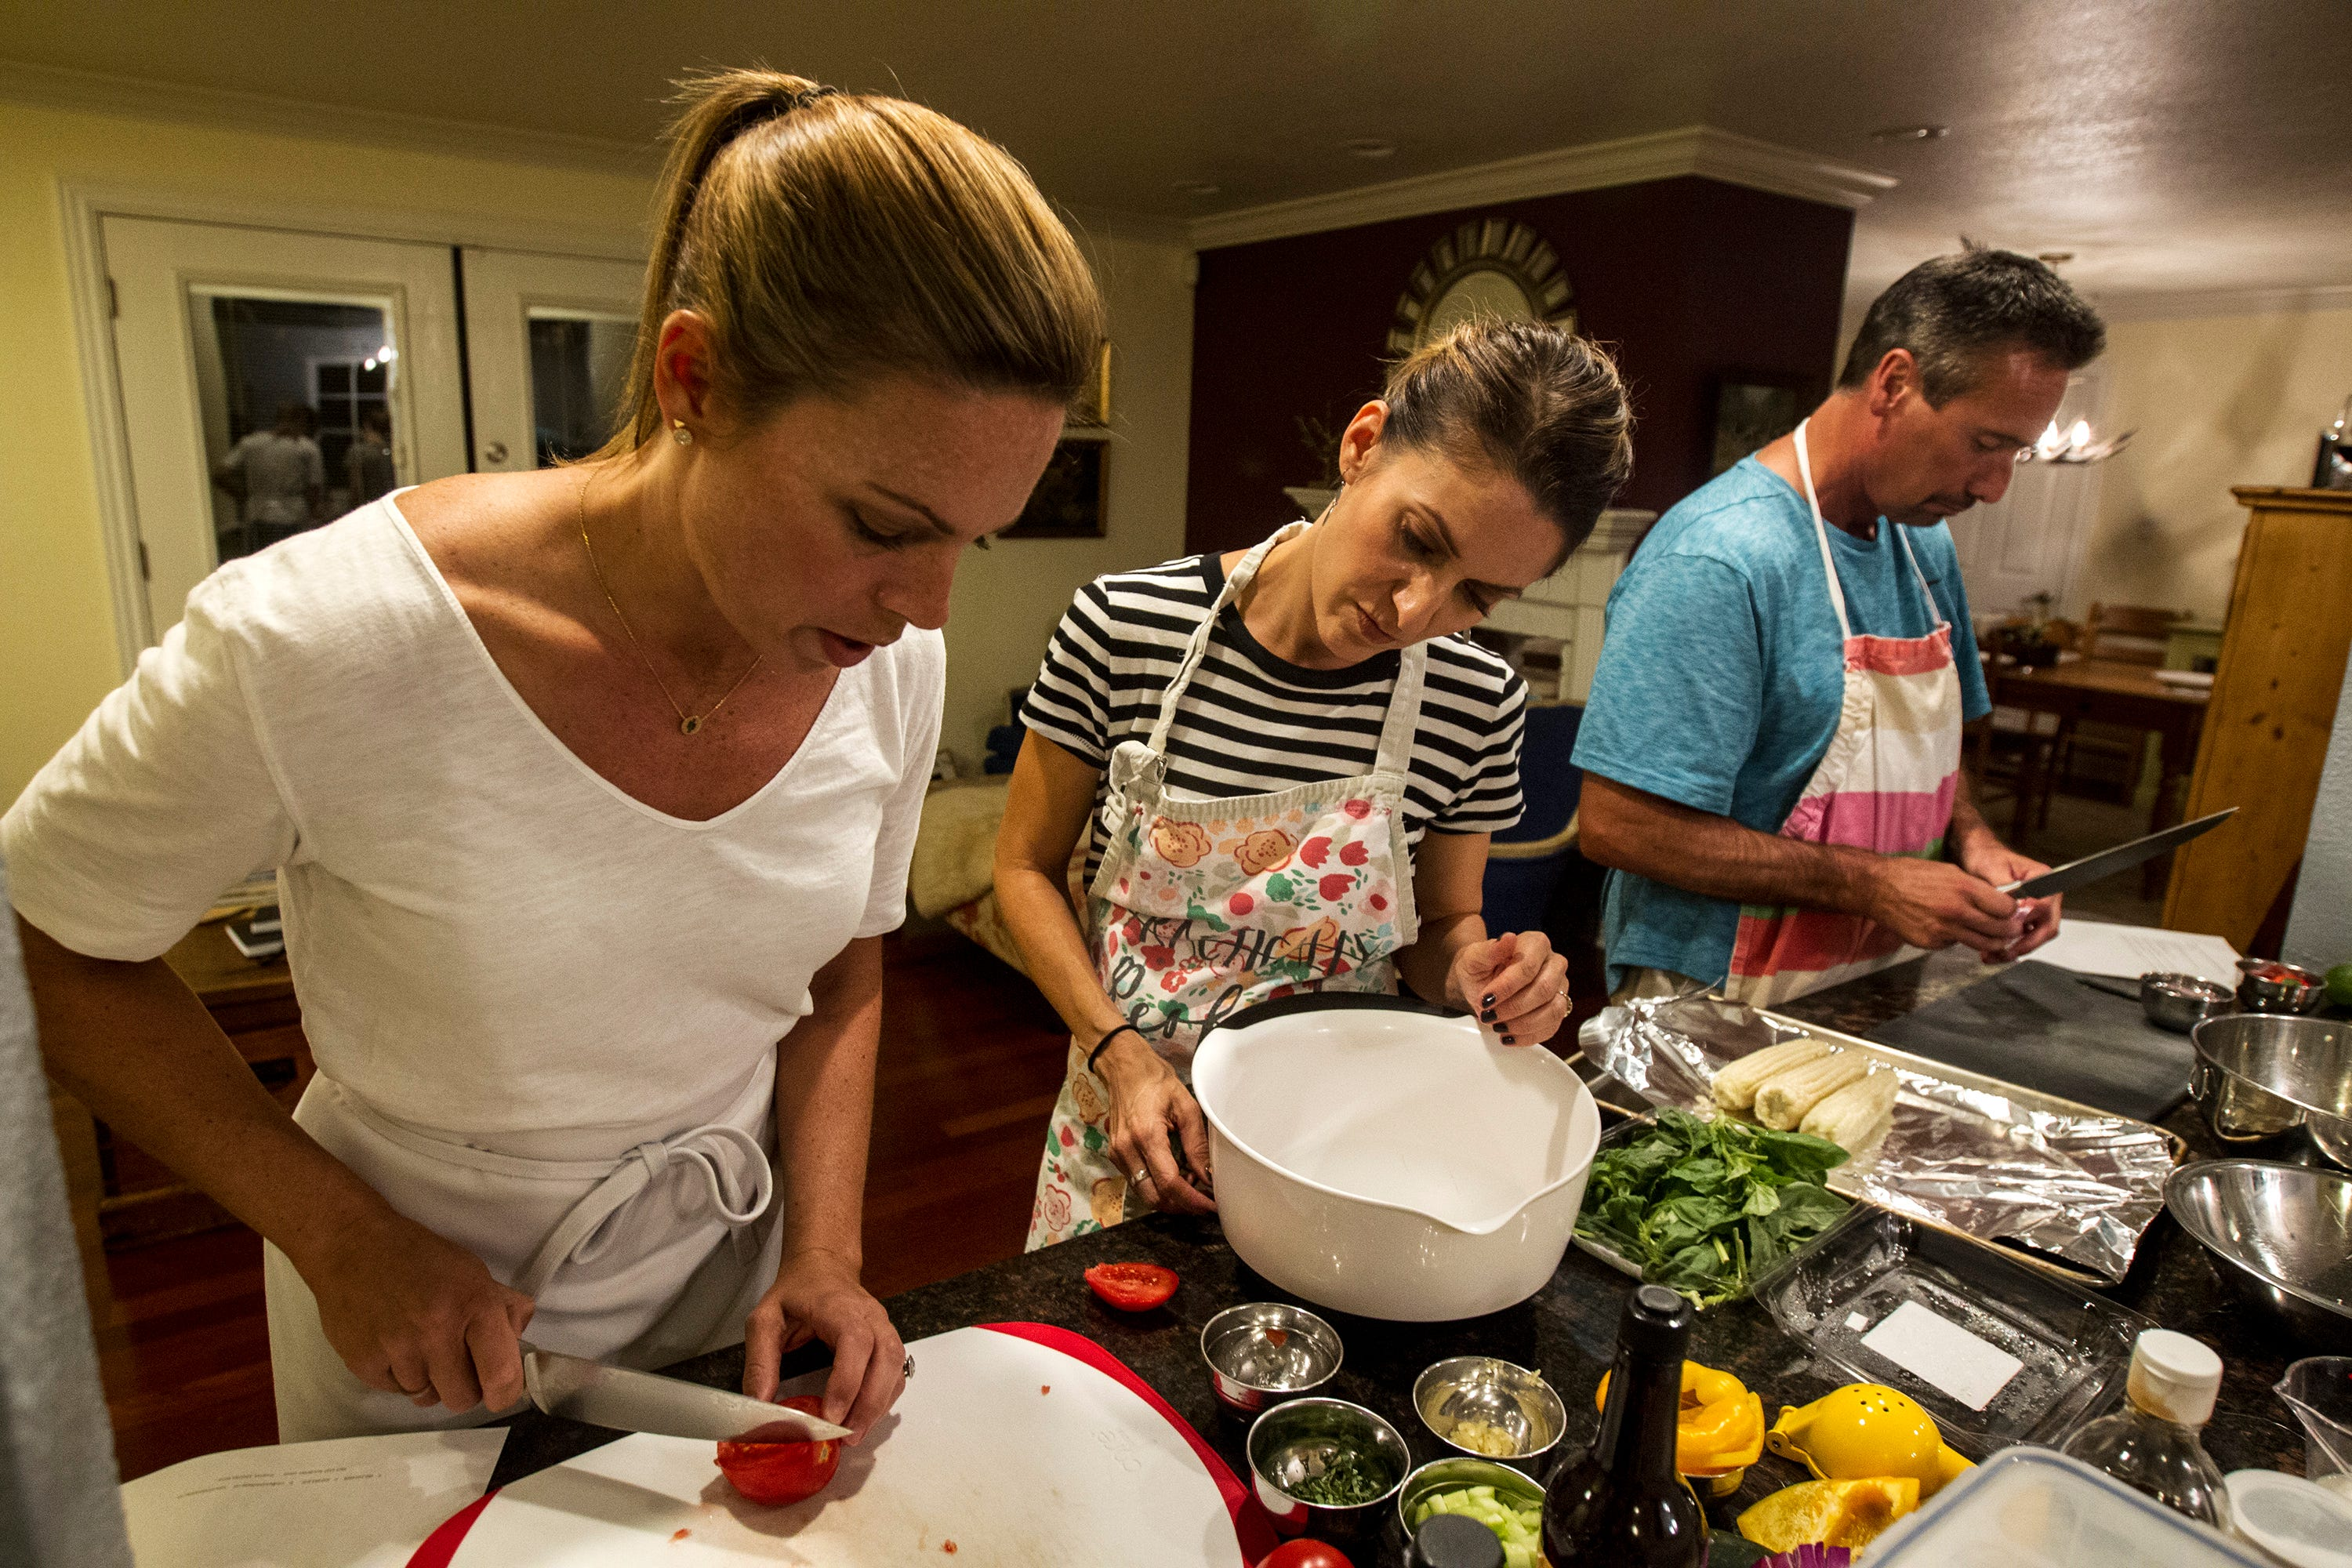 Maggie Norris, left, demonstrates basic knife skills for Michelle Wong while Michael Lopez preps ingredients during a private class at Whisked Away, a cooking school for amateur home chefs, on Sept. 12, 2017, in Phoenix. Norris has been teaching the classes from her home since 2009.